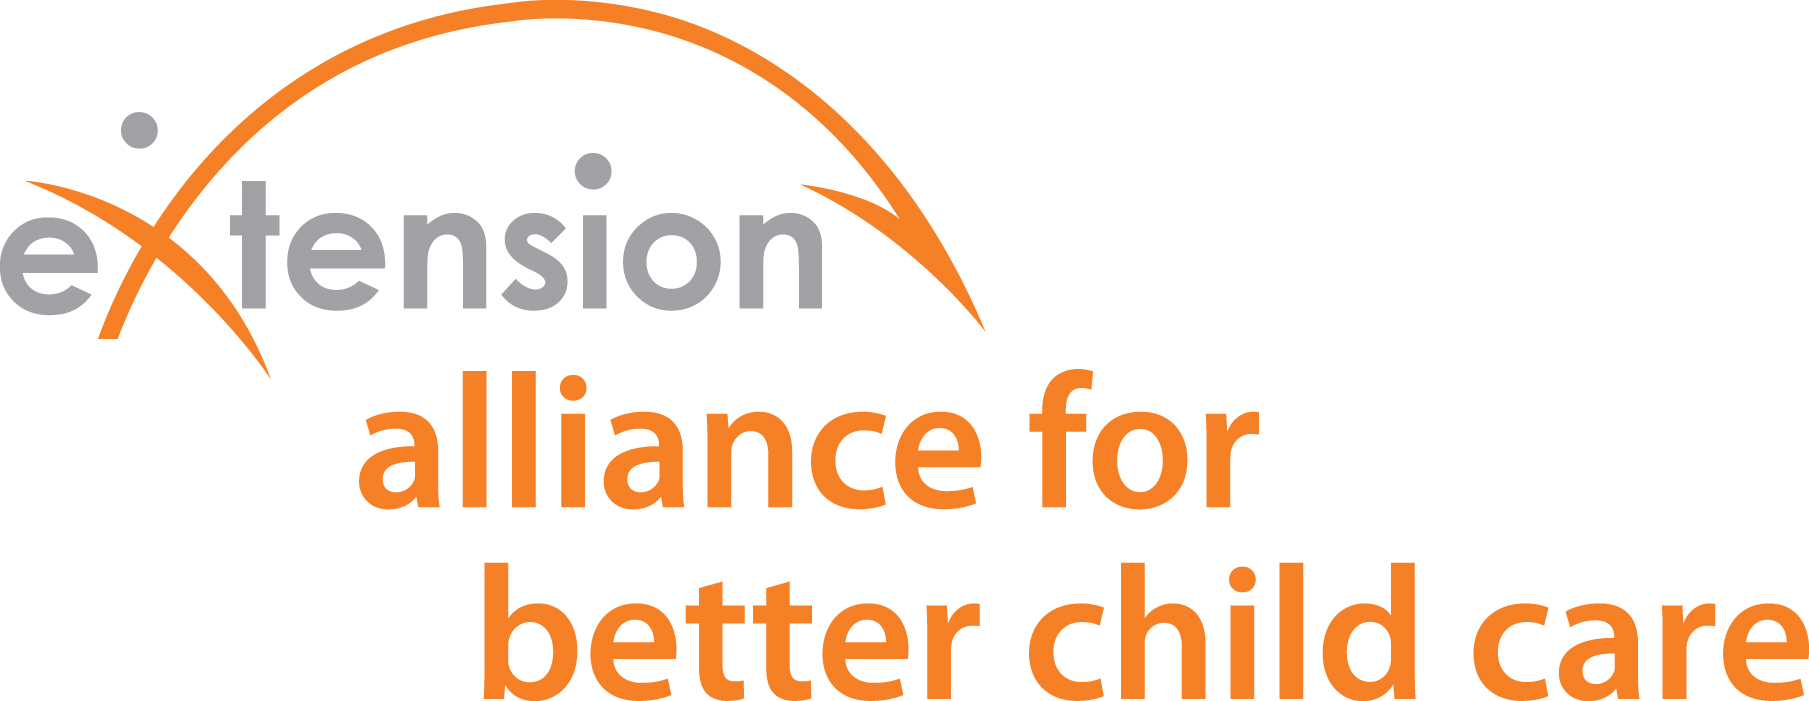 eXtension Alliance for Better Child Care logo